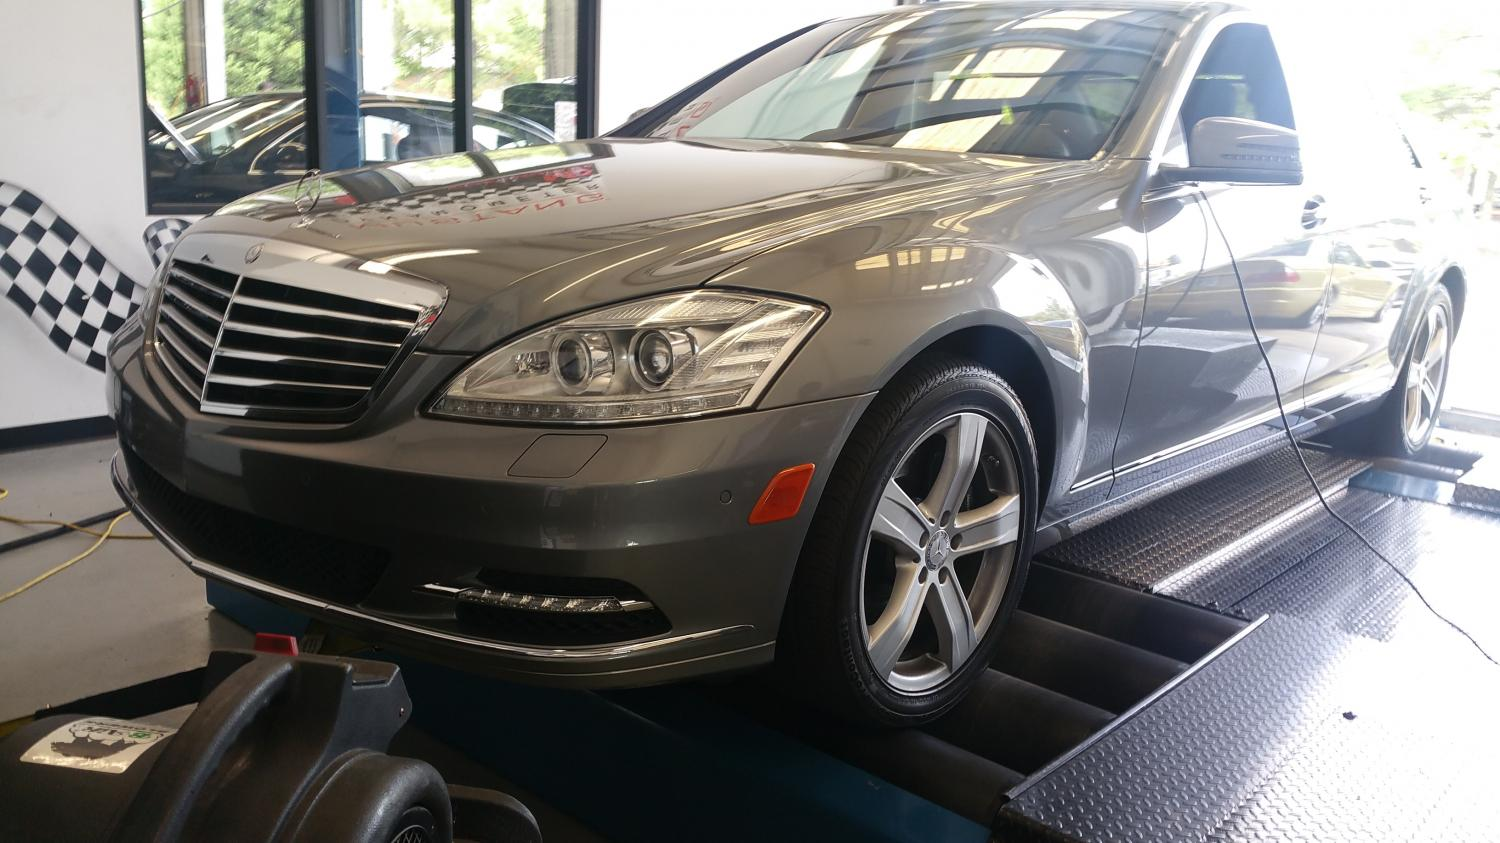 Mercedes S550 Dyno Tuning Solo Motorsports